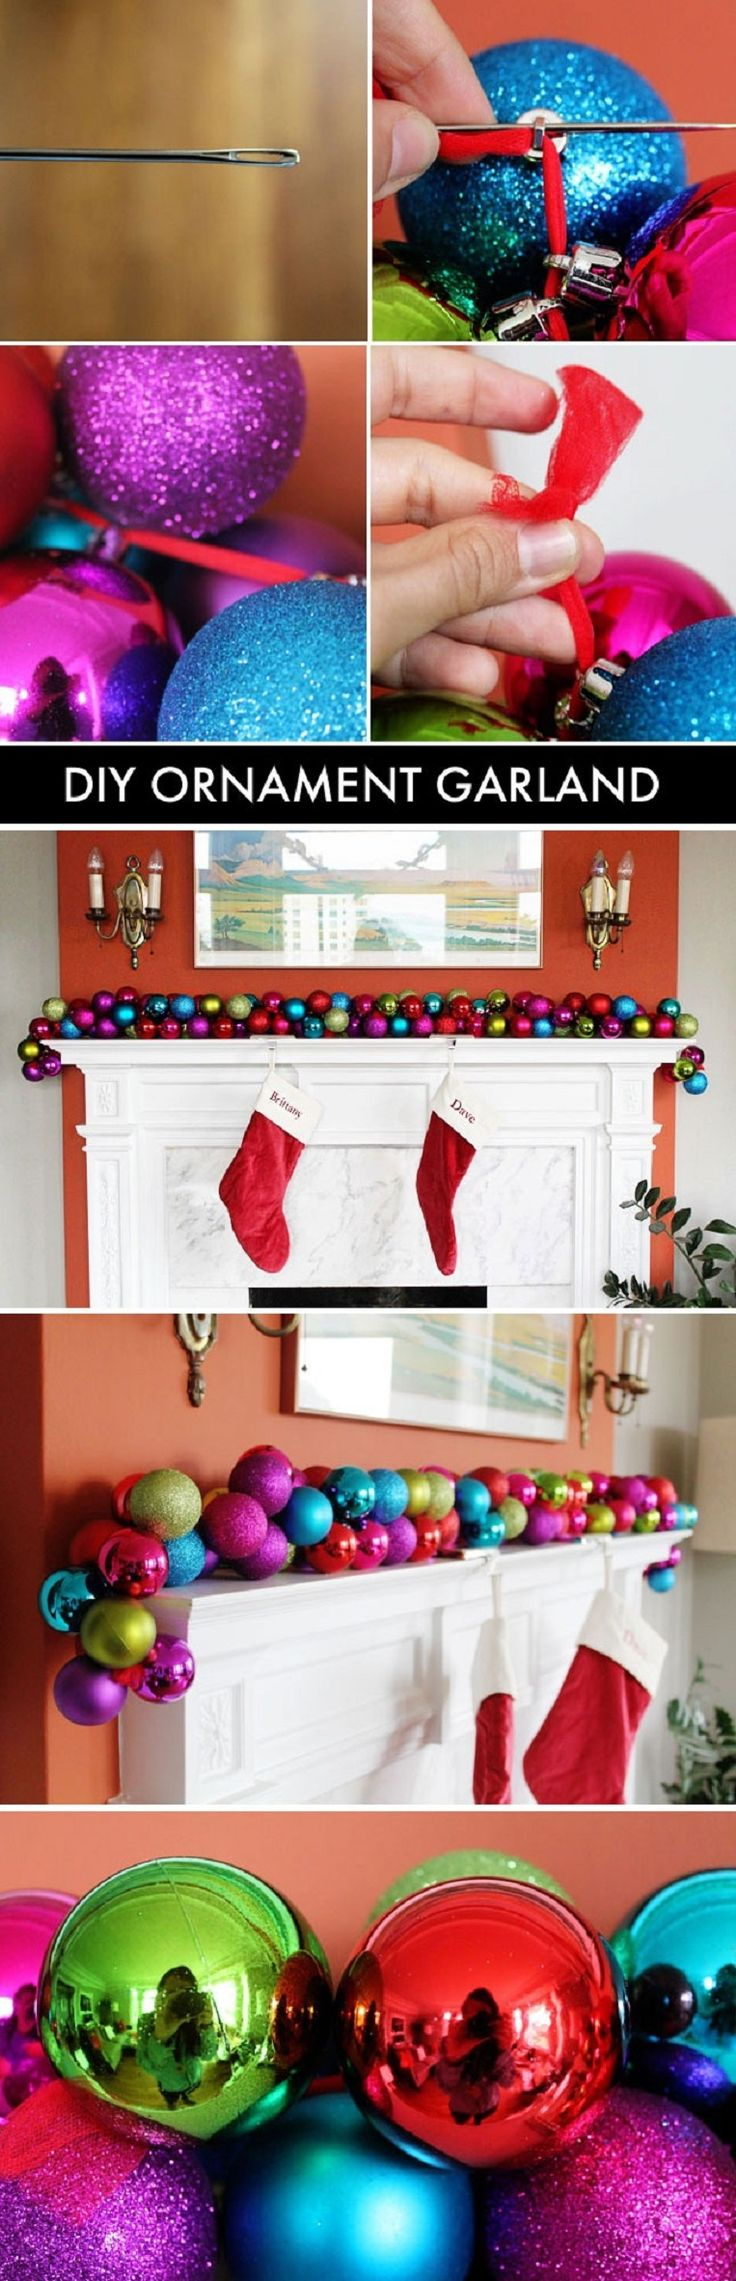 DIY Ornament Garland in 10 Minutes or Less